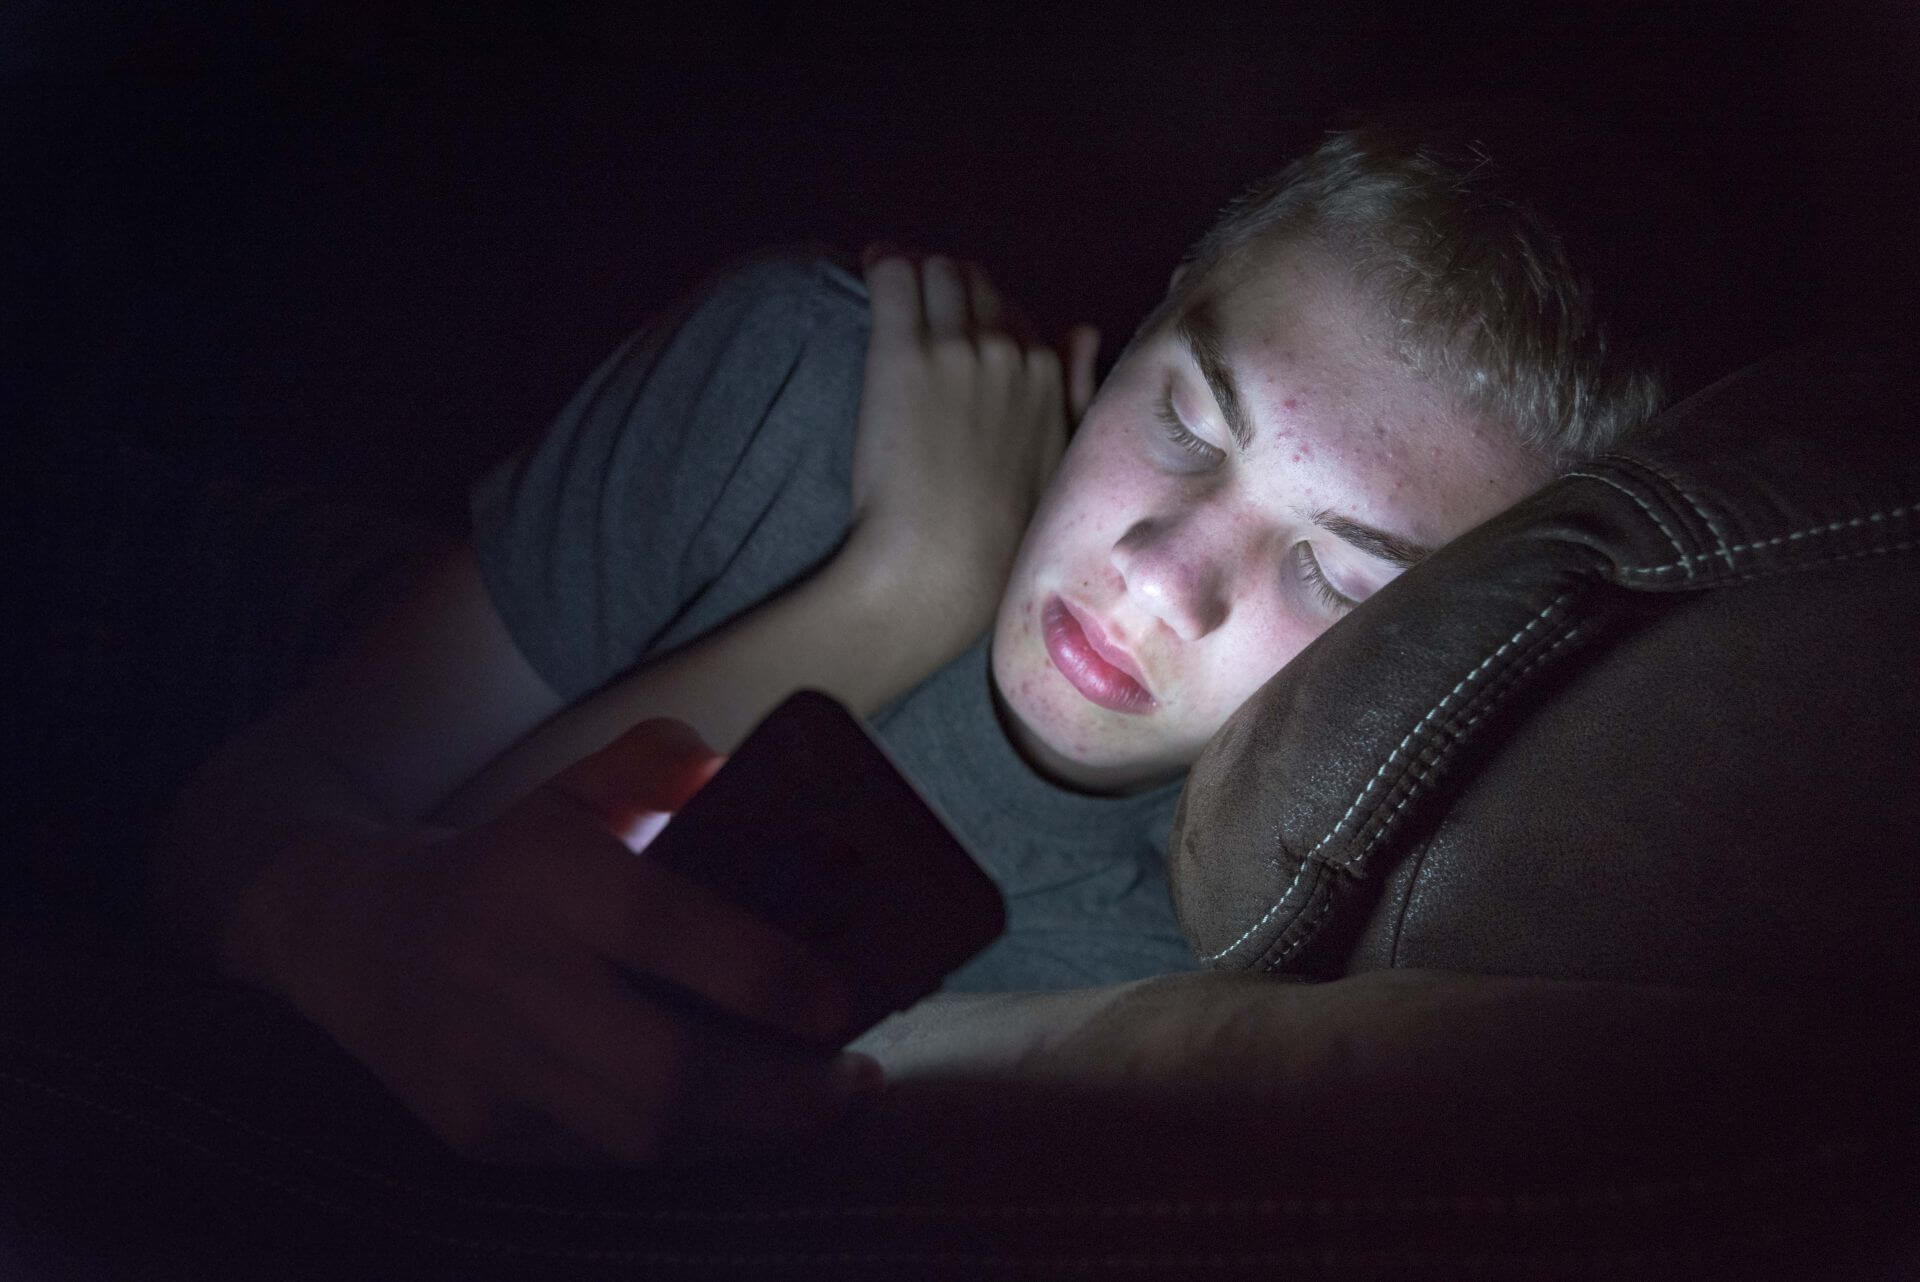 Teenager setting screen time rules on his phone